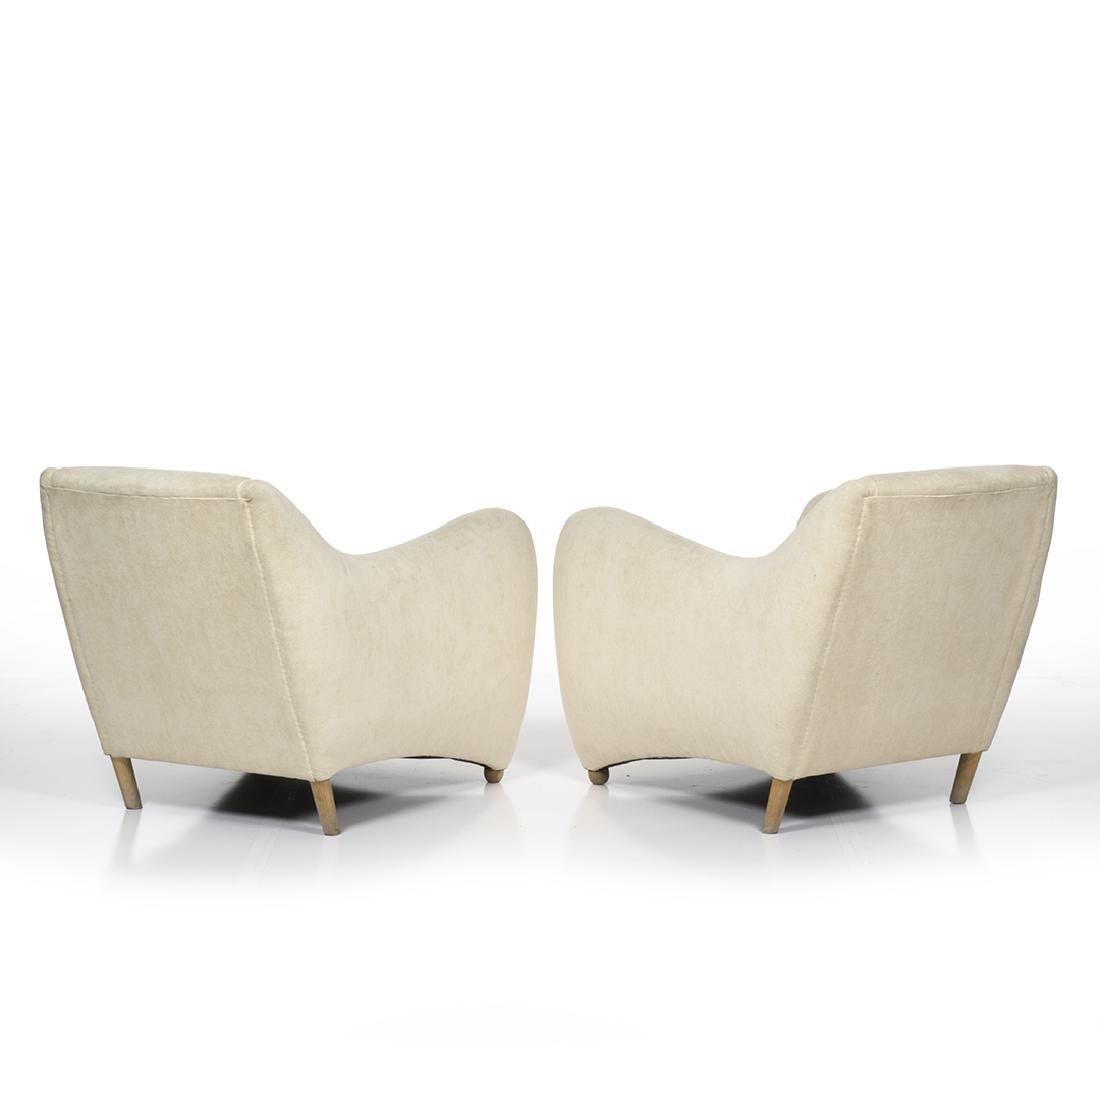 Matthew Hilton Balzac Chairs (2) - 3